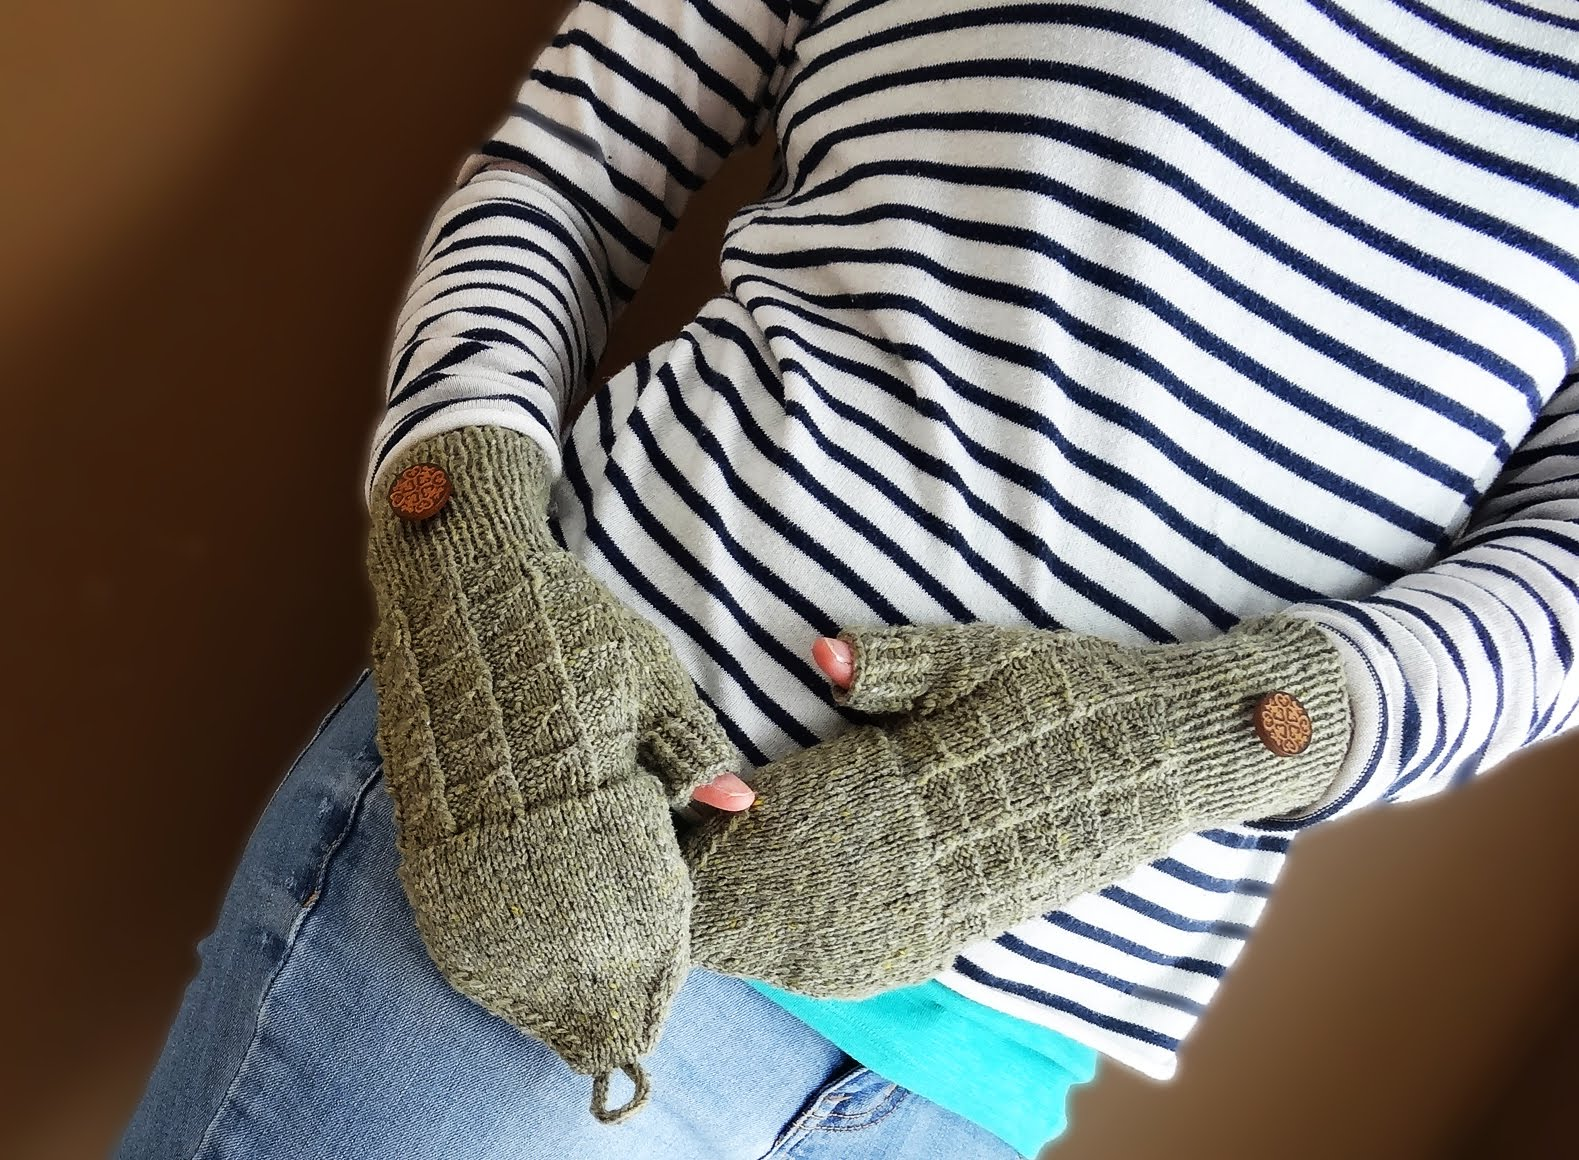 Mr. Cratchit's Convertible Mitts